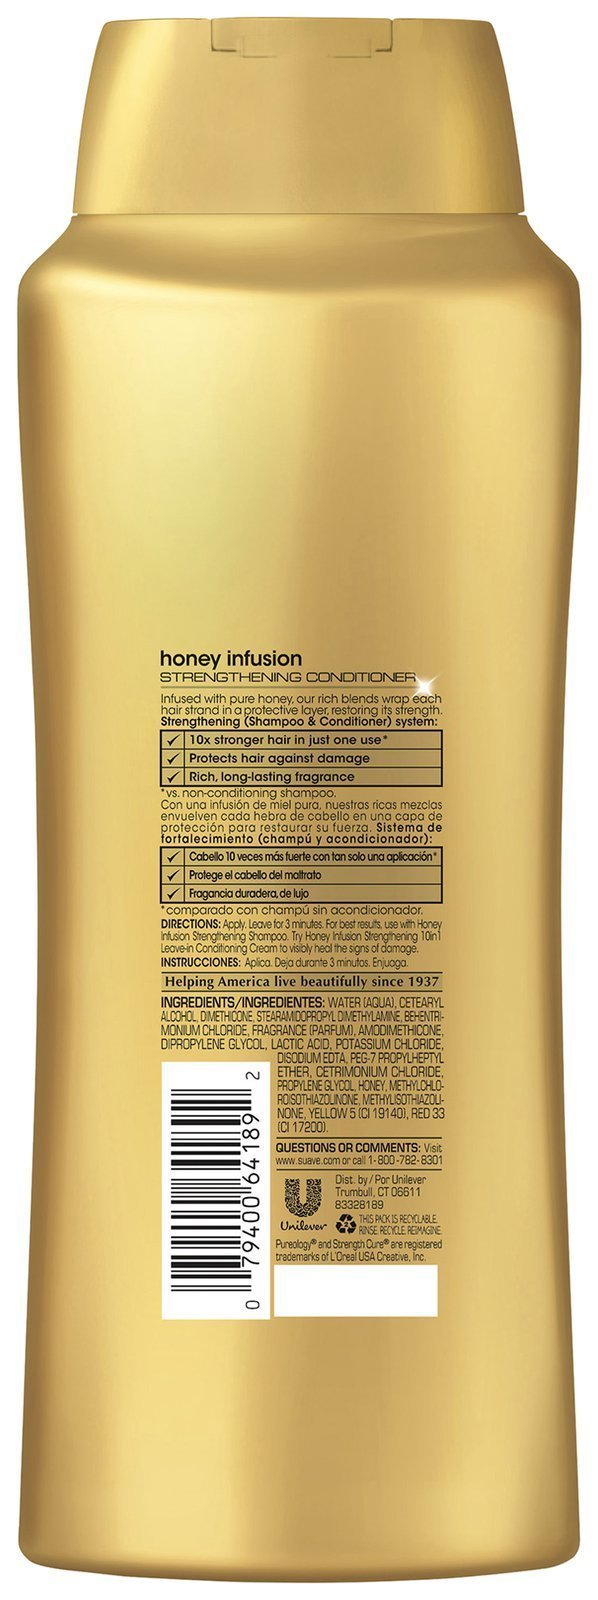 Suave Professionals Strengthening Conditioner Honey Infusion, 28 Ounce by Suave (Image #2)